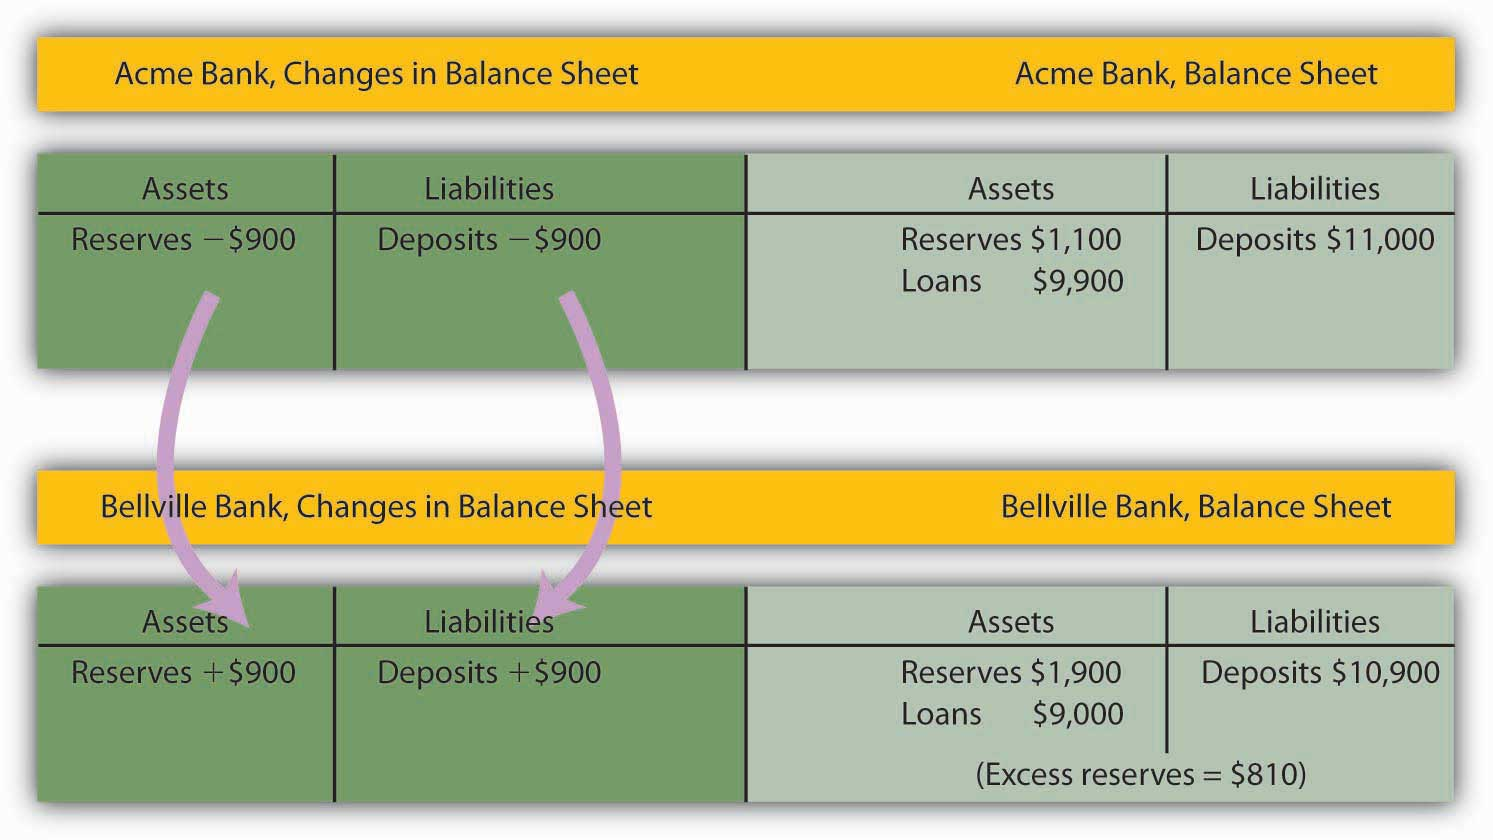 Chart showing the changes in balances when a customer from Acme bank pays someone who deposits their check at Bellville Bank. Shows that Acme bank loses $900 of assets that become assets for Bellville bank.